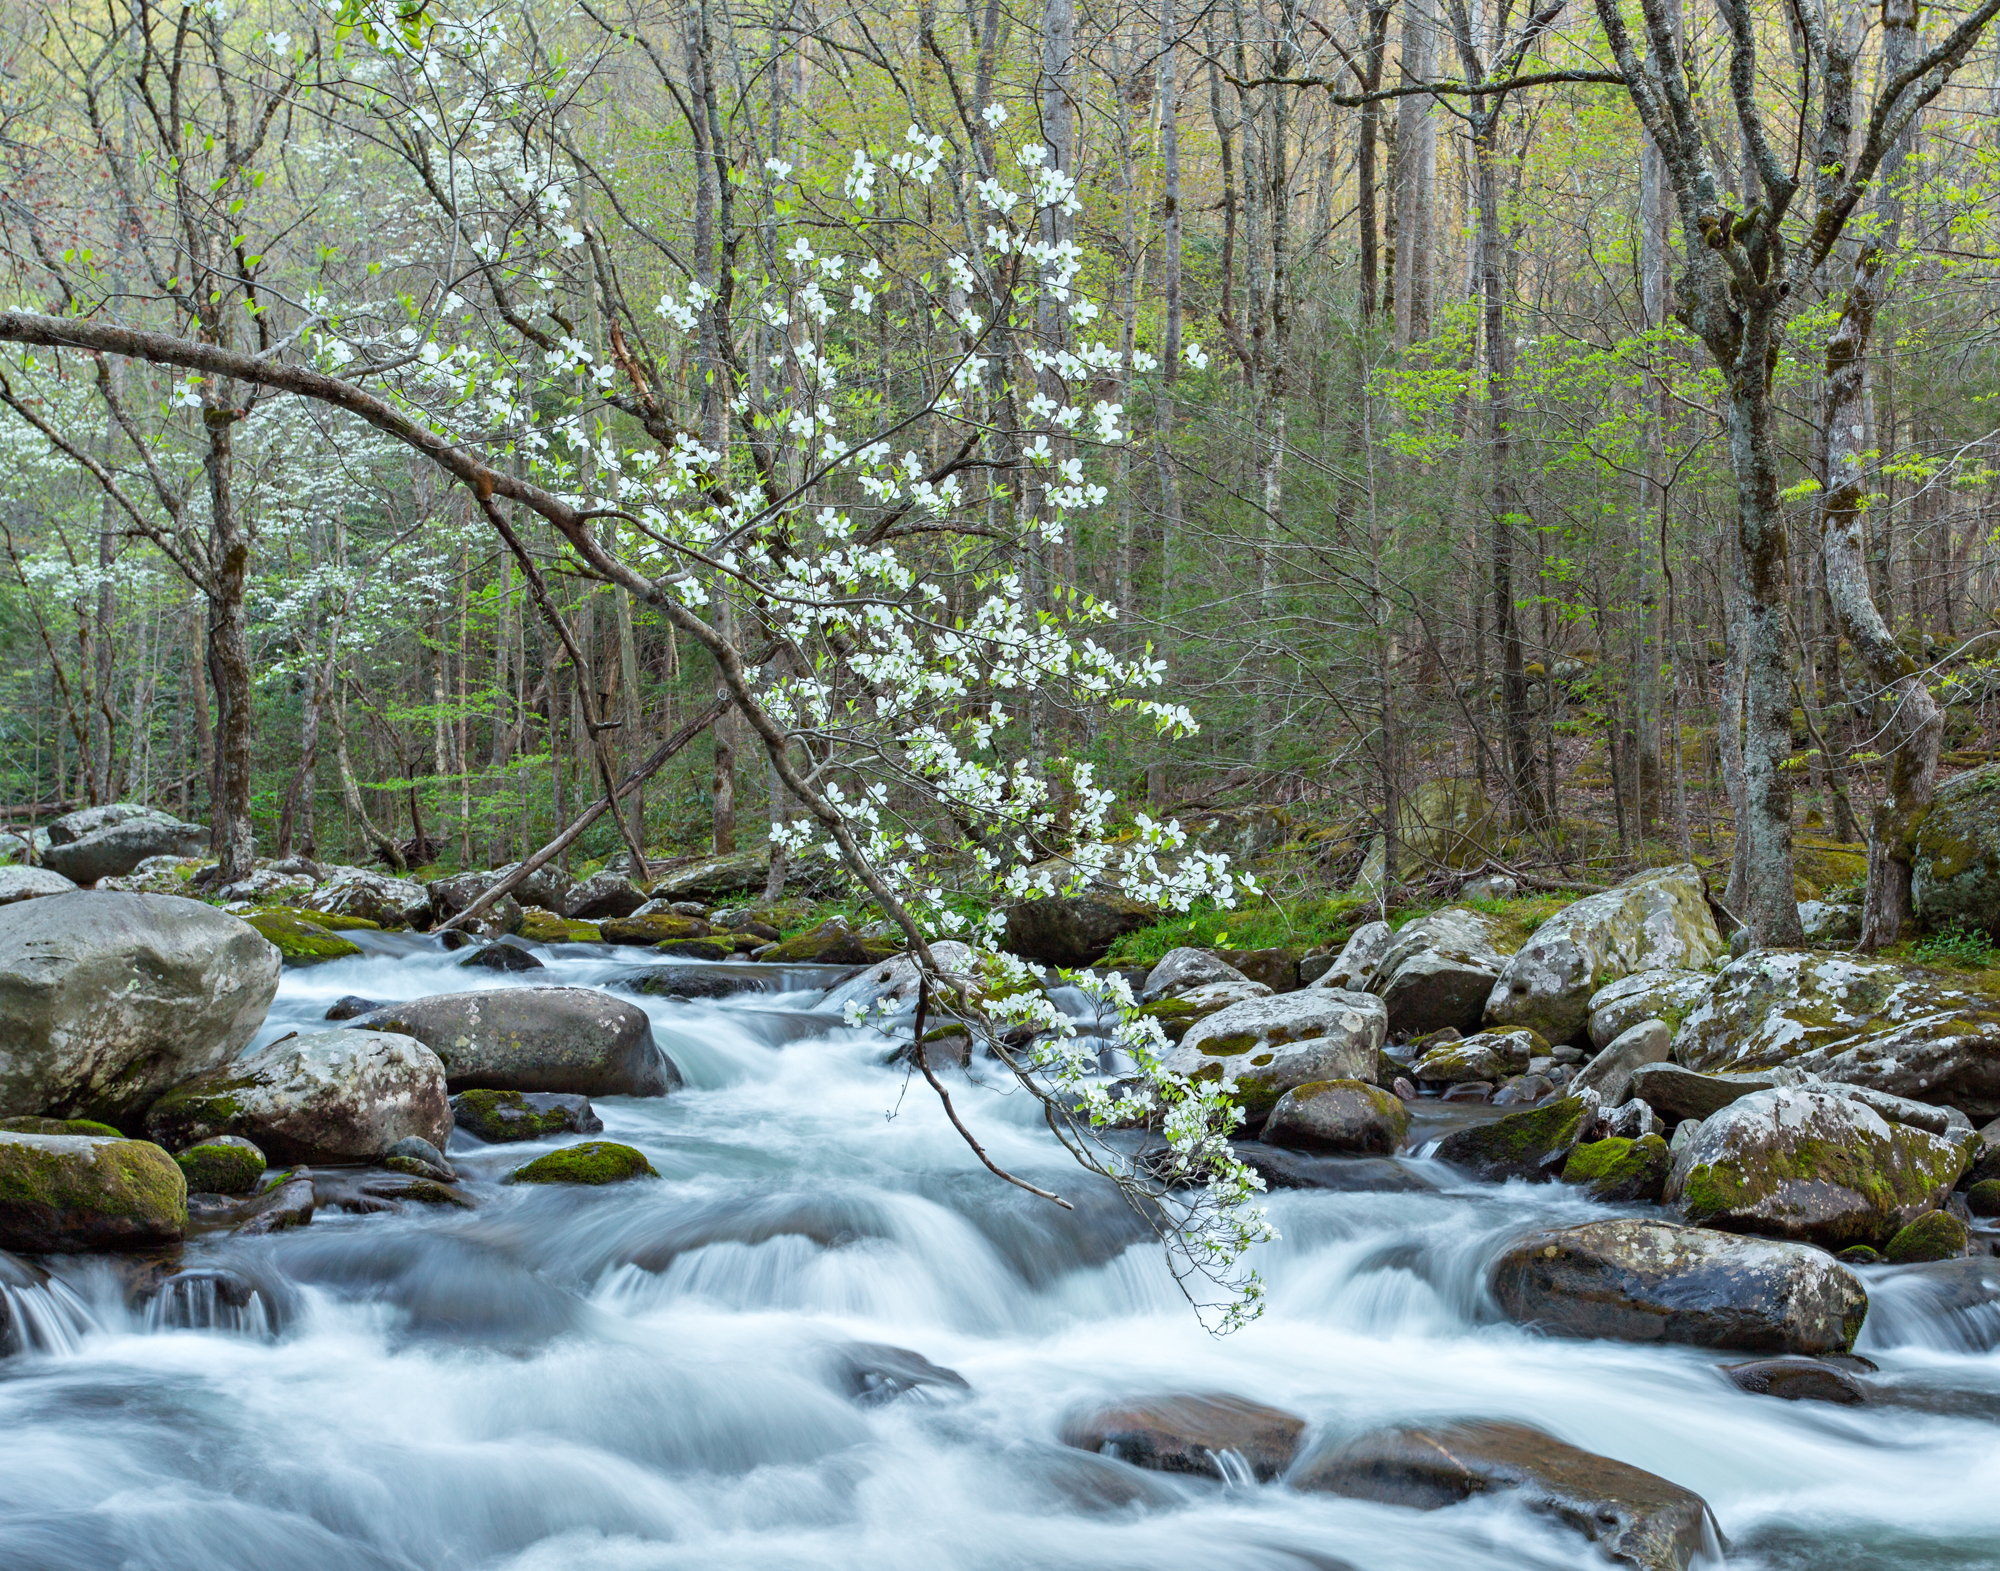 13. Tremont, Great Smoky Mountains National Park, Tennessee